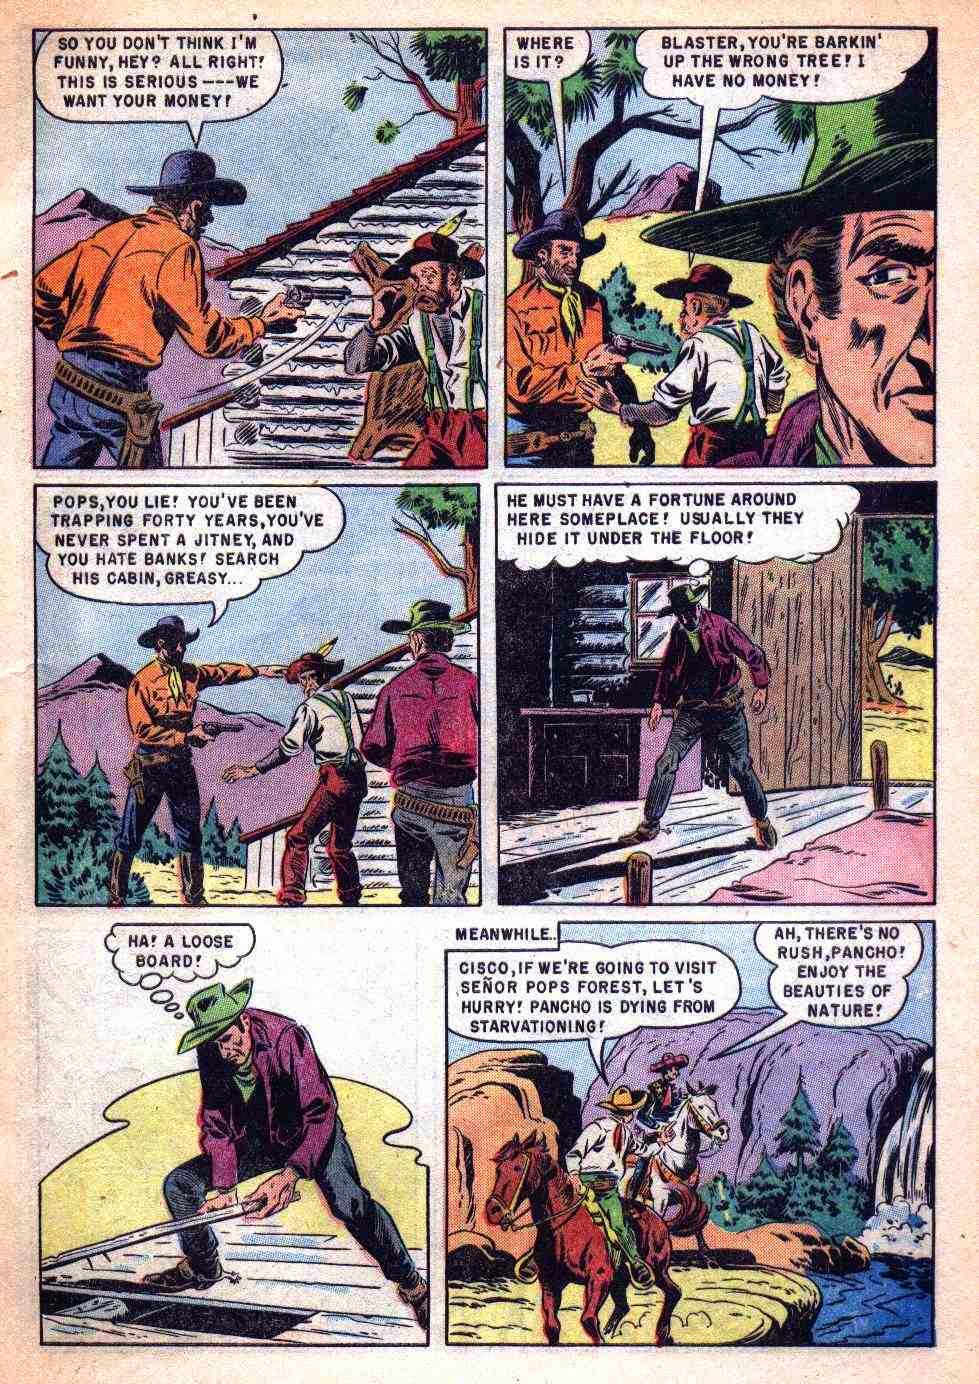 From The Cisco Kid 27 May June 1955